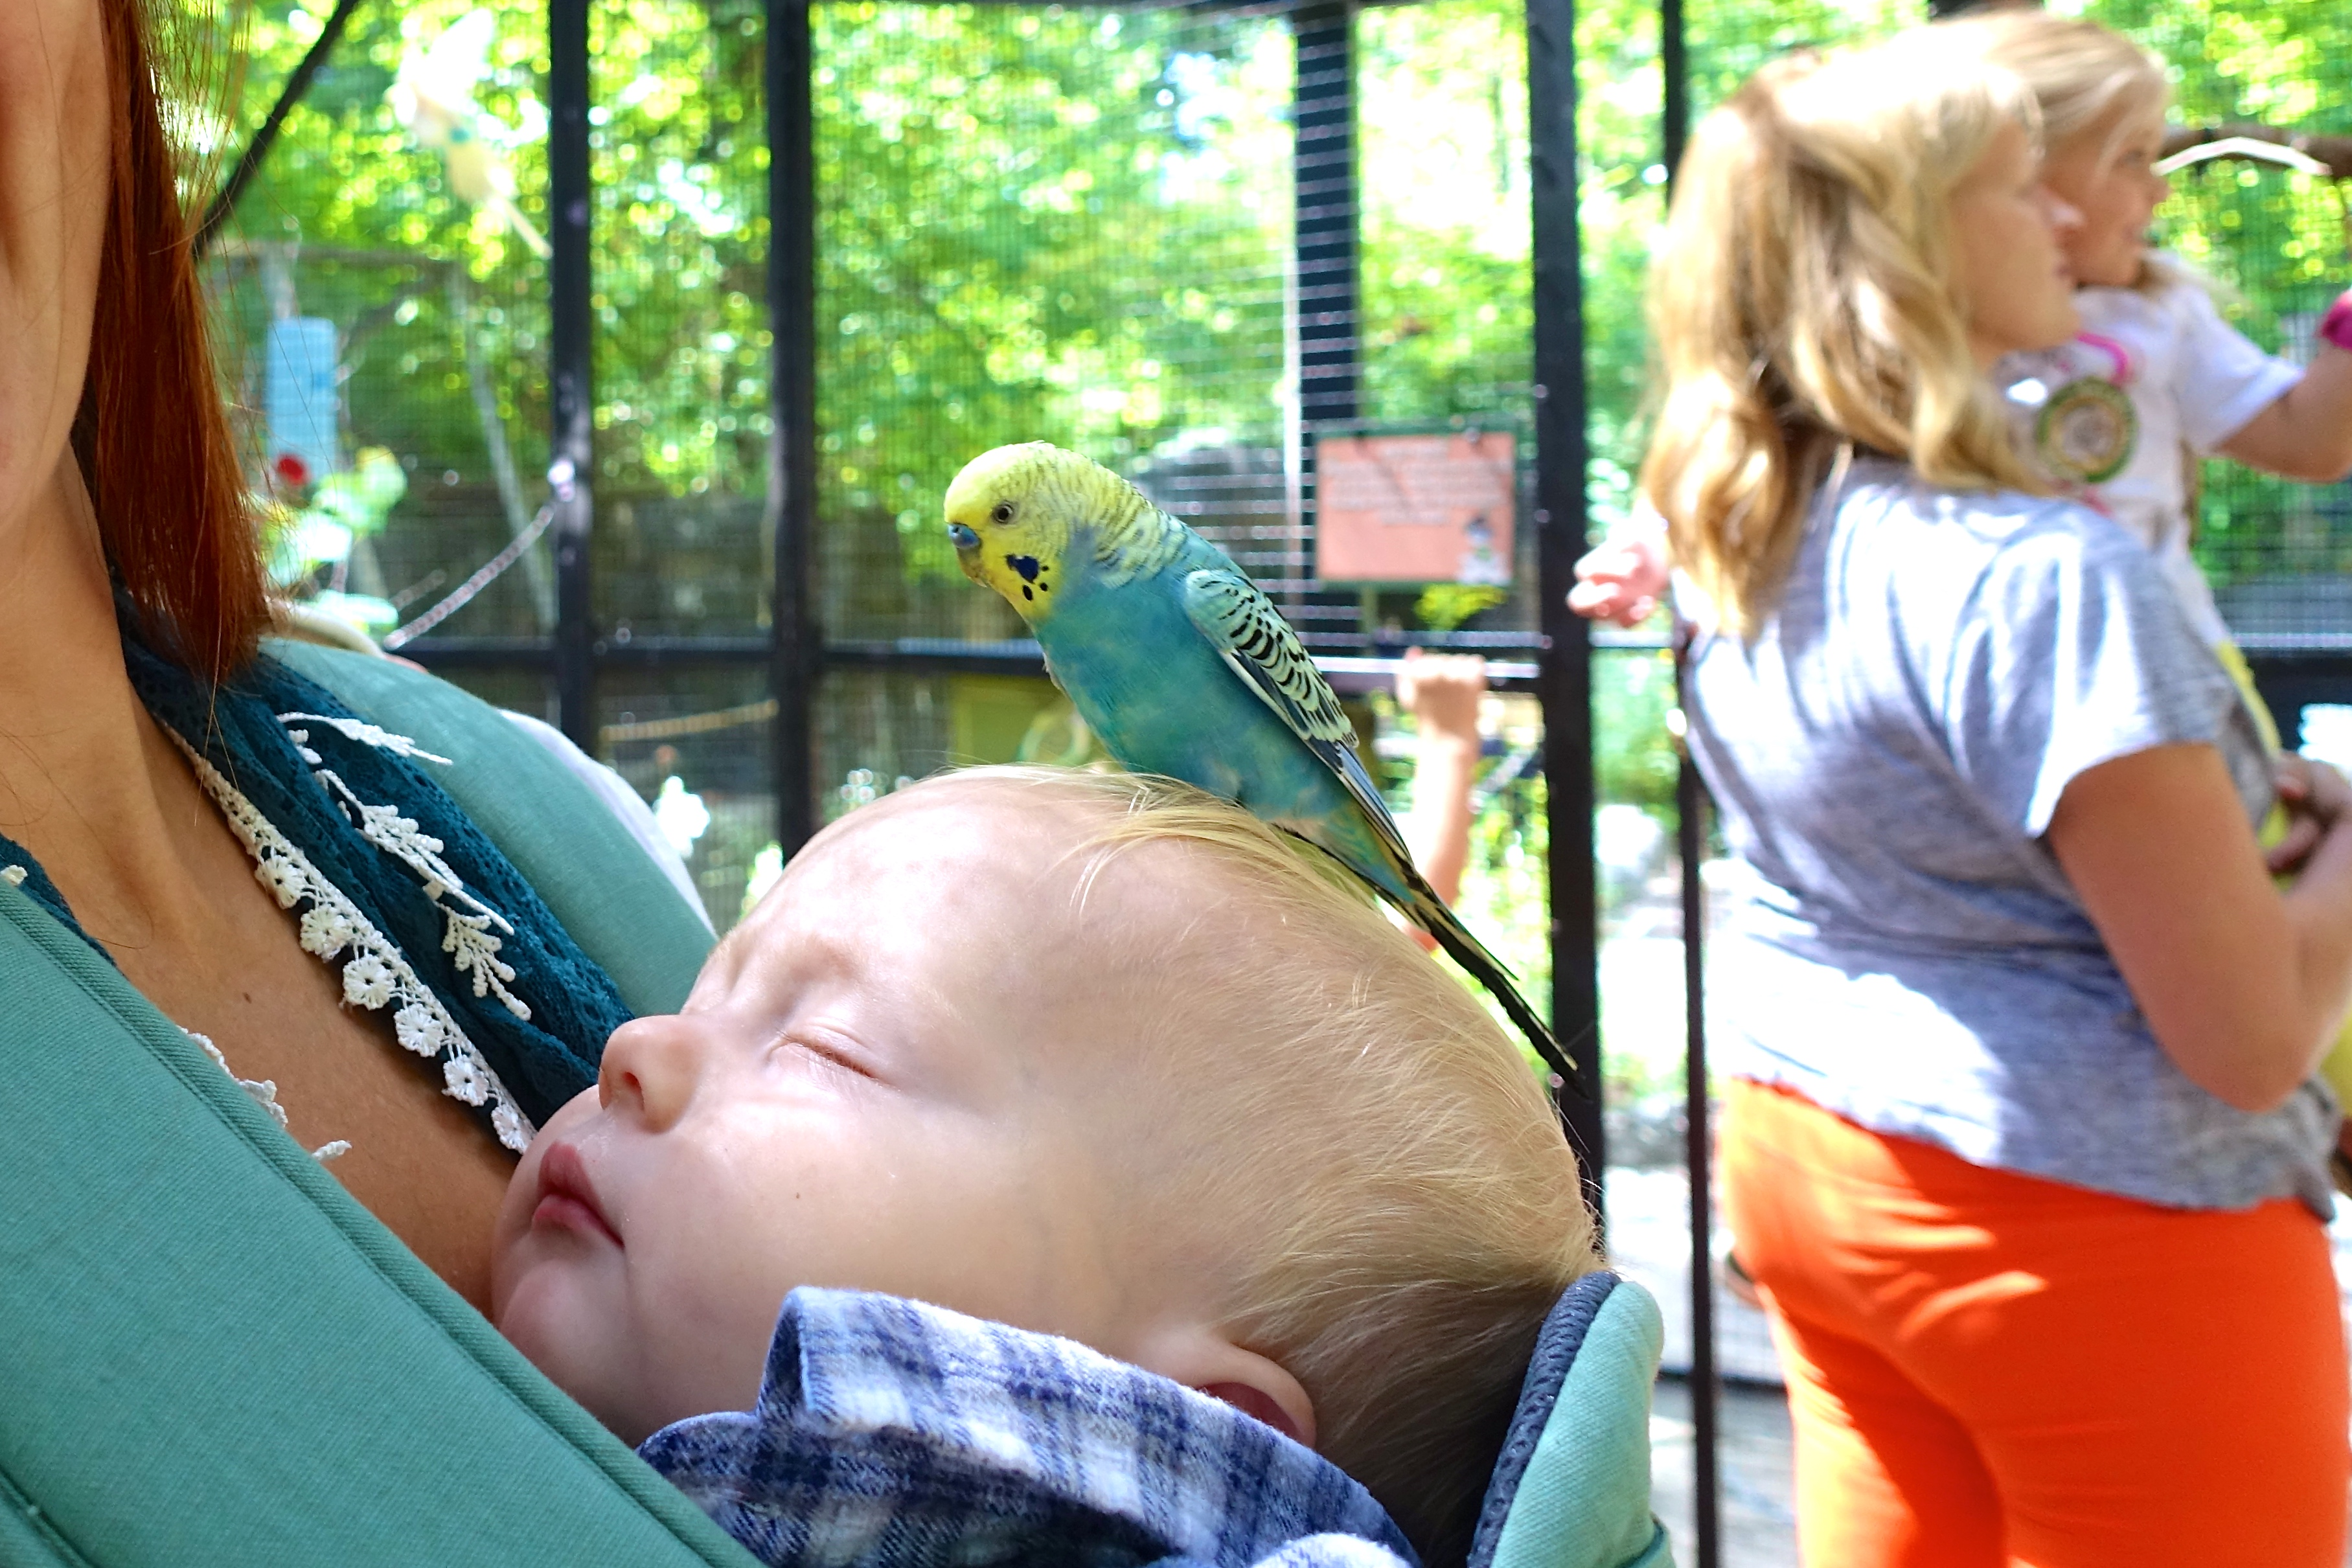 Budgie on baby's head